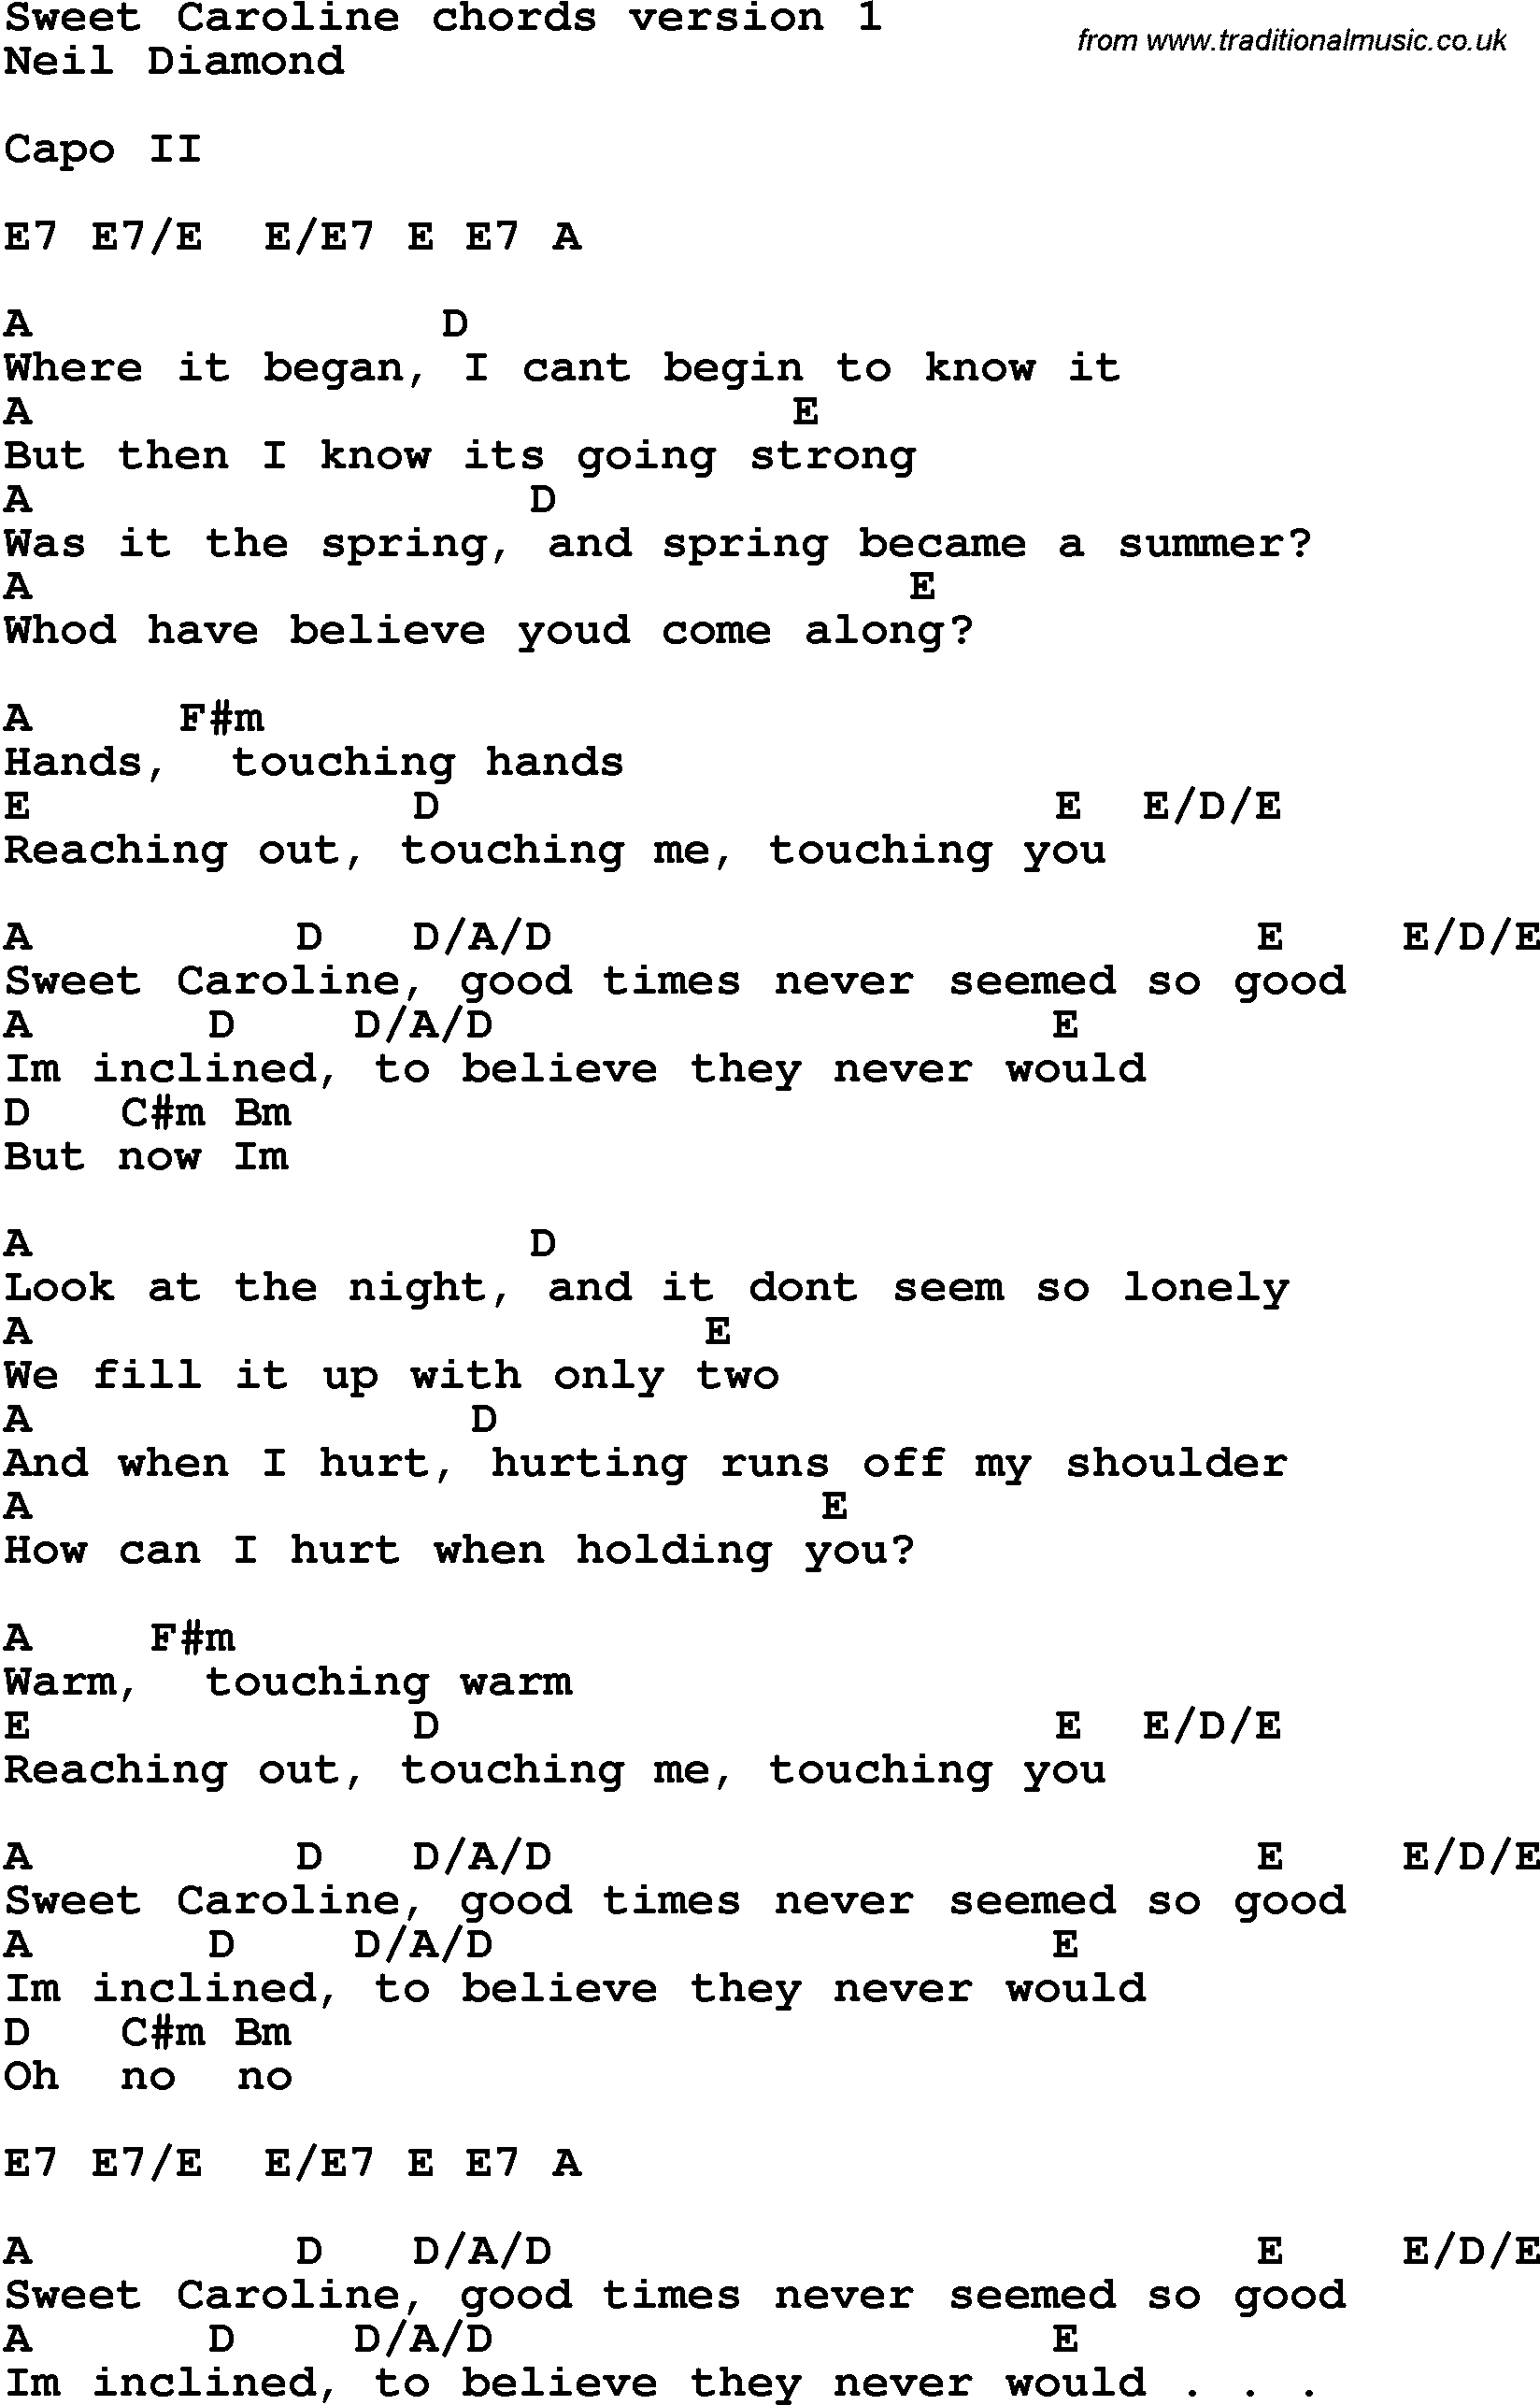 Castles In The Air Lyrics Don Maclean Pinterest Guitar Chords